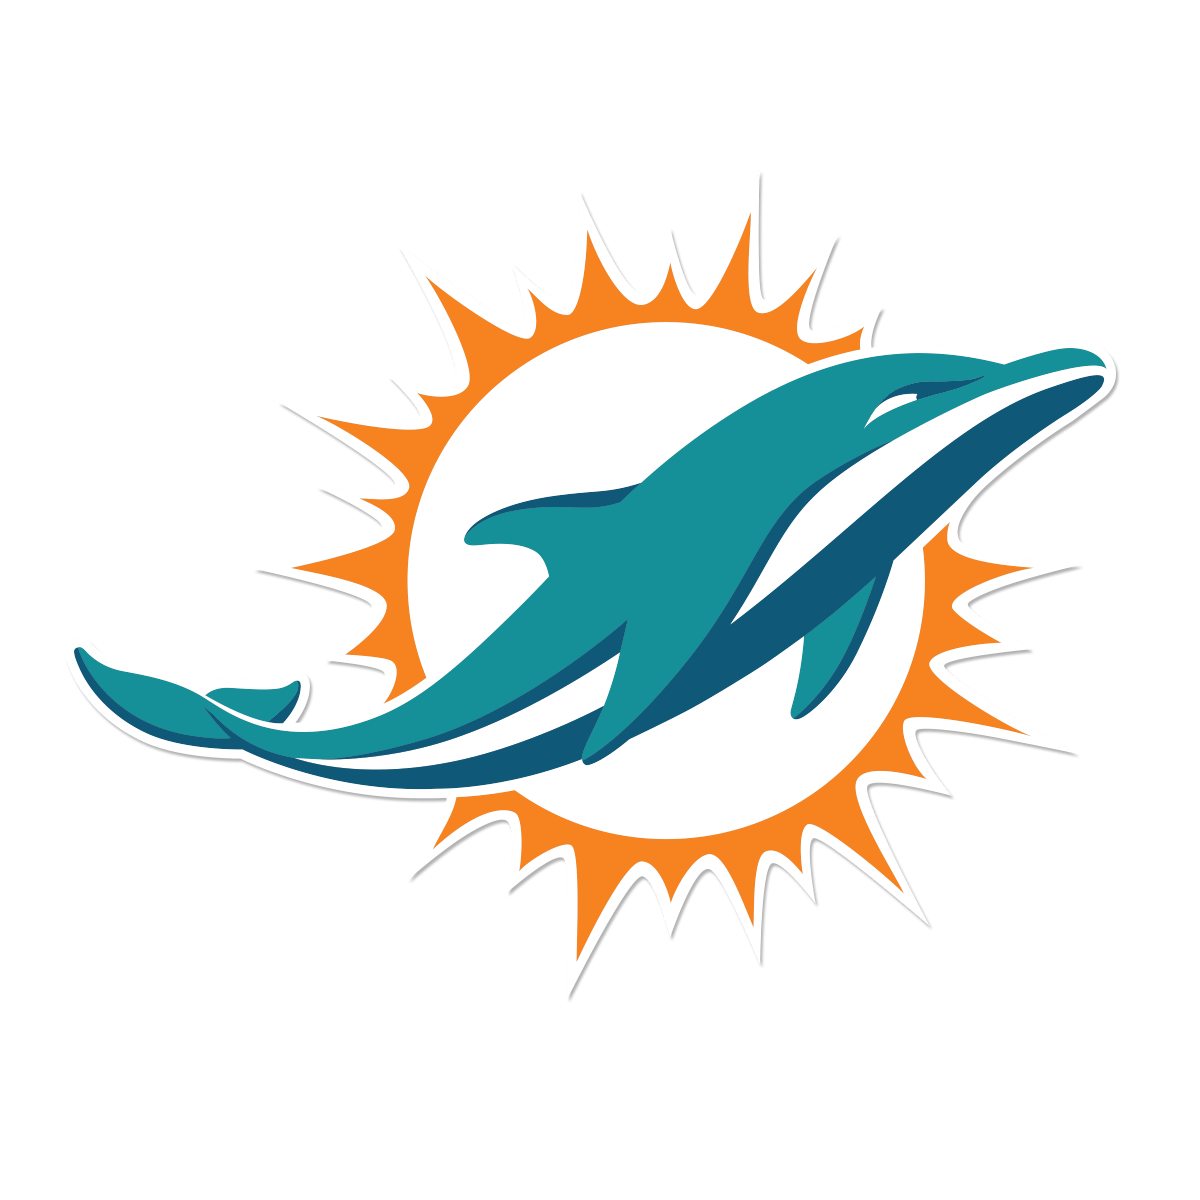 Clipart dolphin dolphin miami logo. Dolphins transparent png stickpng